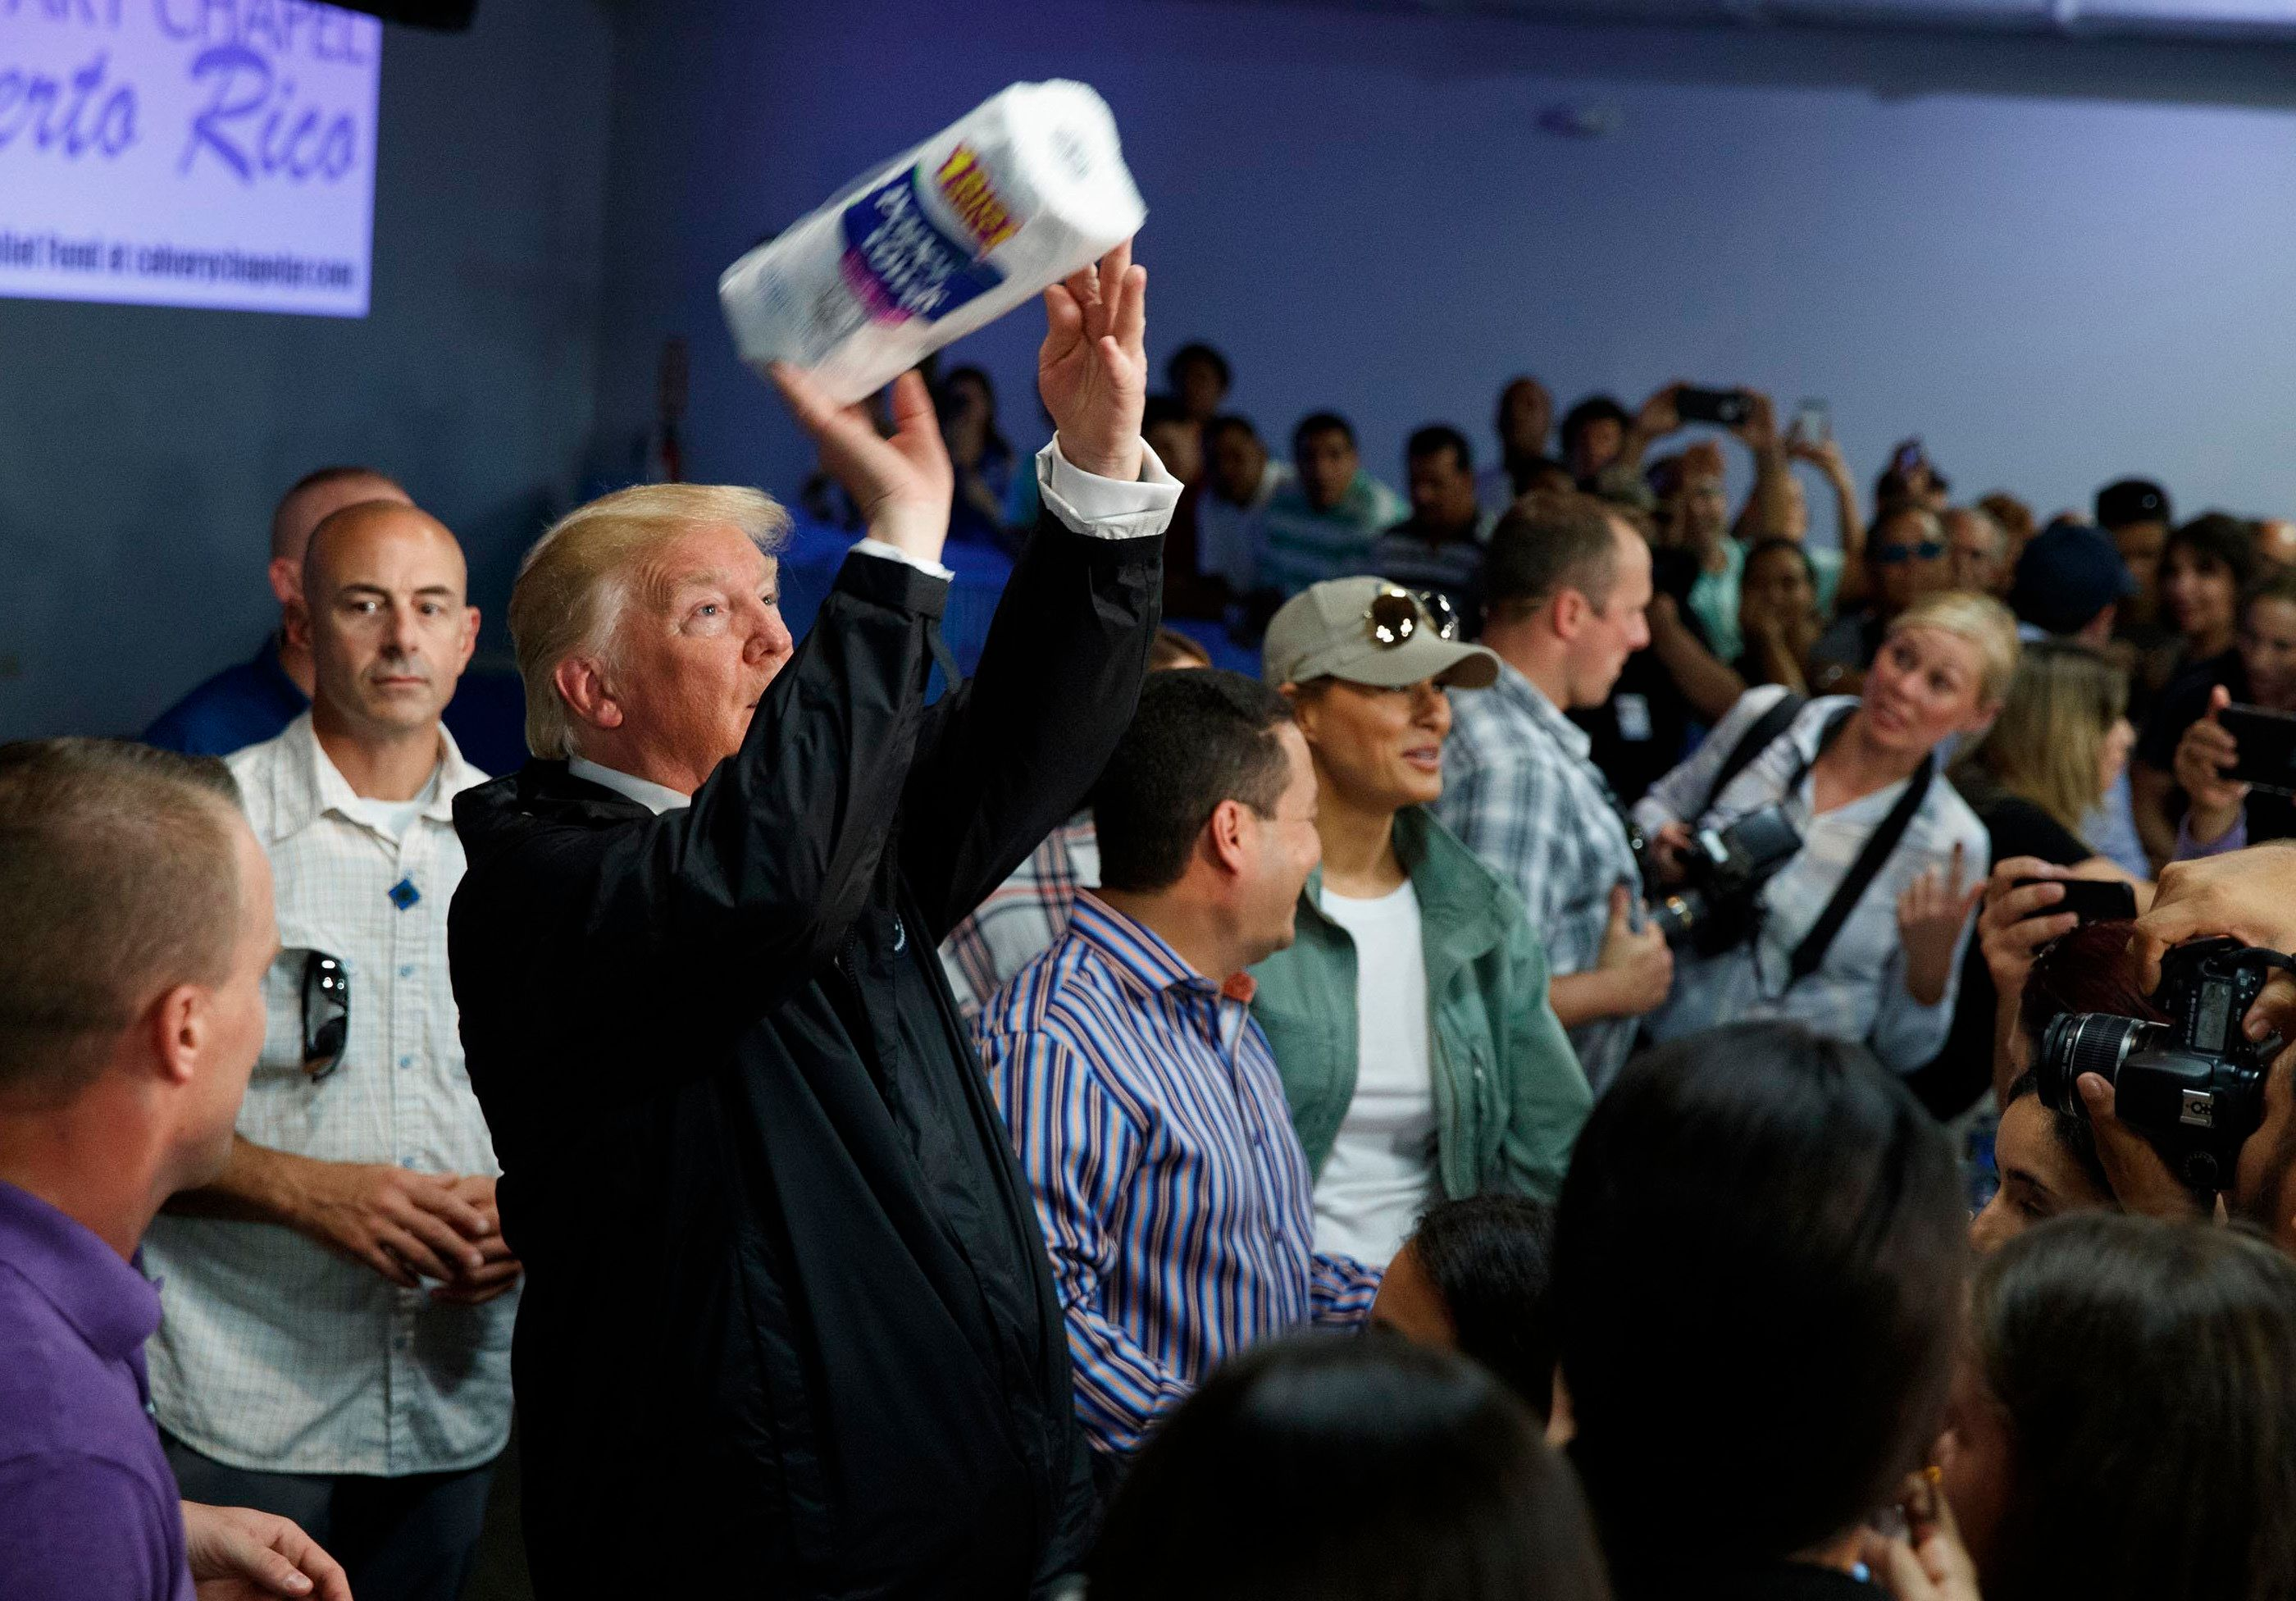 """FILE - In this Oct. 3, 2017 file photo, President Donald Trump tosses paper towels into a crowd at Calvary Chapel in Guaynabo, Puerto Rico. Trump congratulated Puerto Rico for escaping the higher death toll of """"a real catastrophe like Katrina"""" and heaped praise on the relief efforts of his administration without mentioning the sharp criticism the federal response has drawn. (AP Photo/Evan Vucci, File)"""